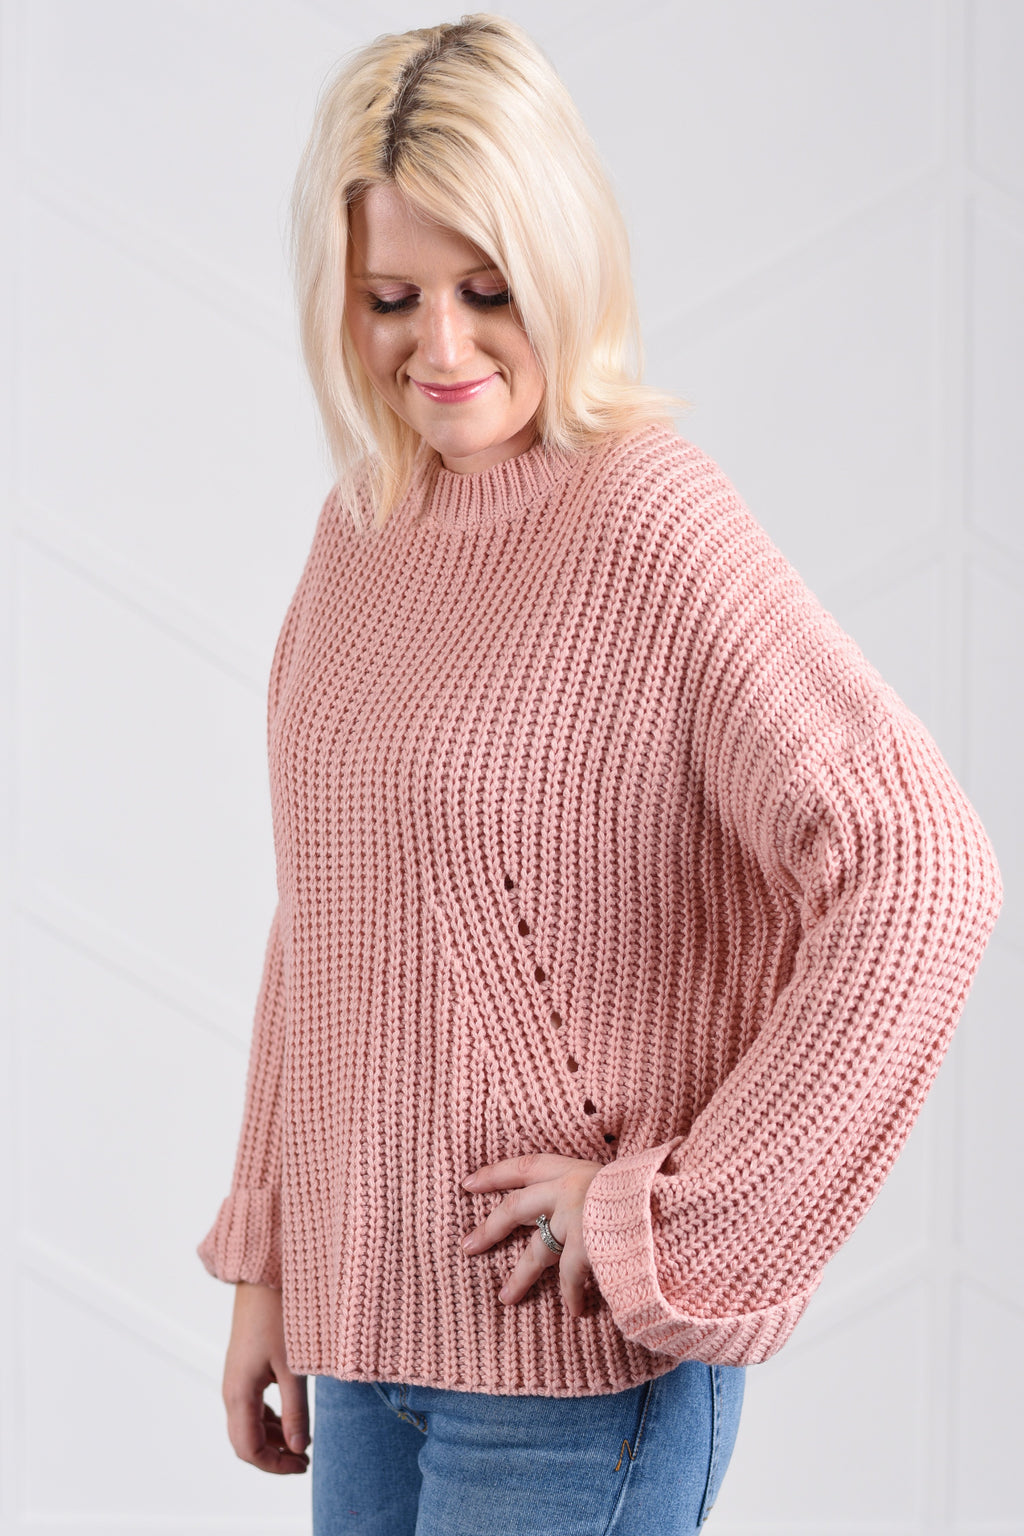 Kimberly Knitted Sweater - women's boutique clothing Strong Confident You